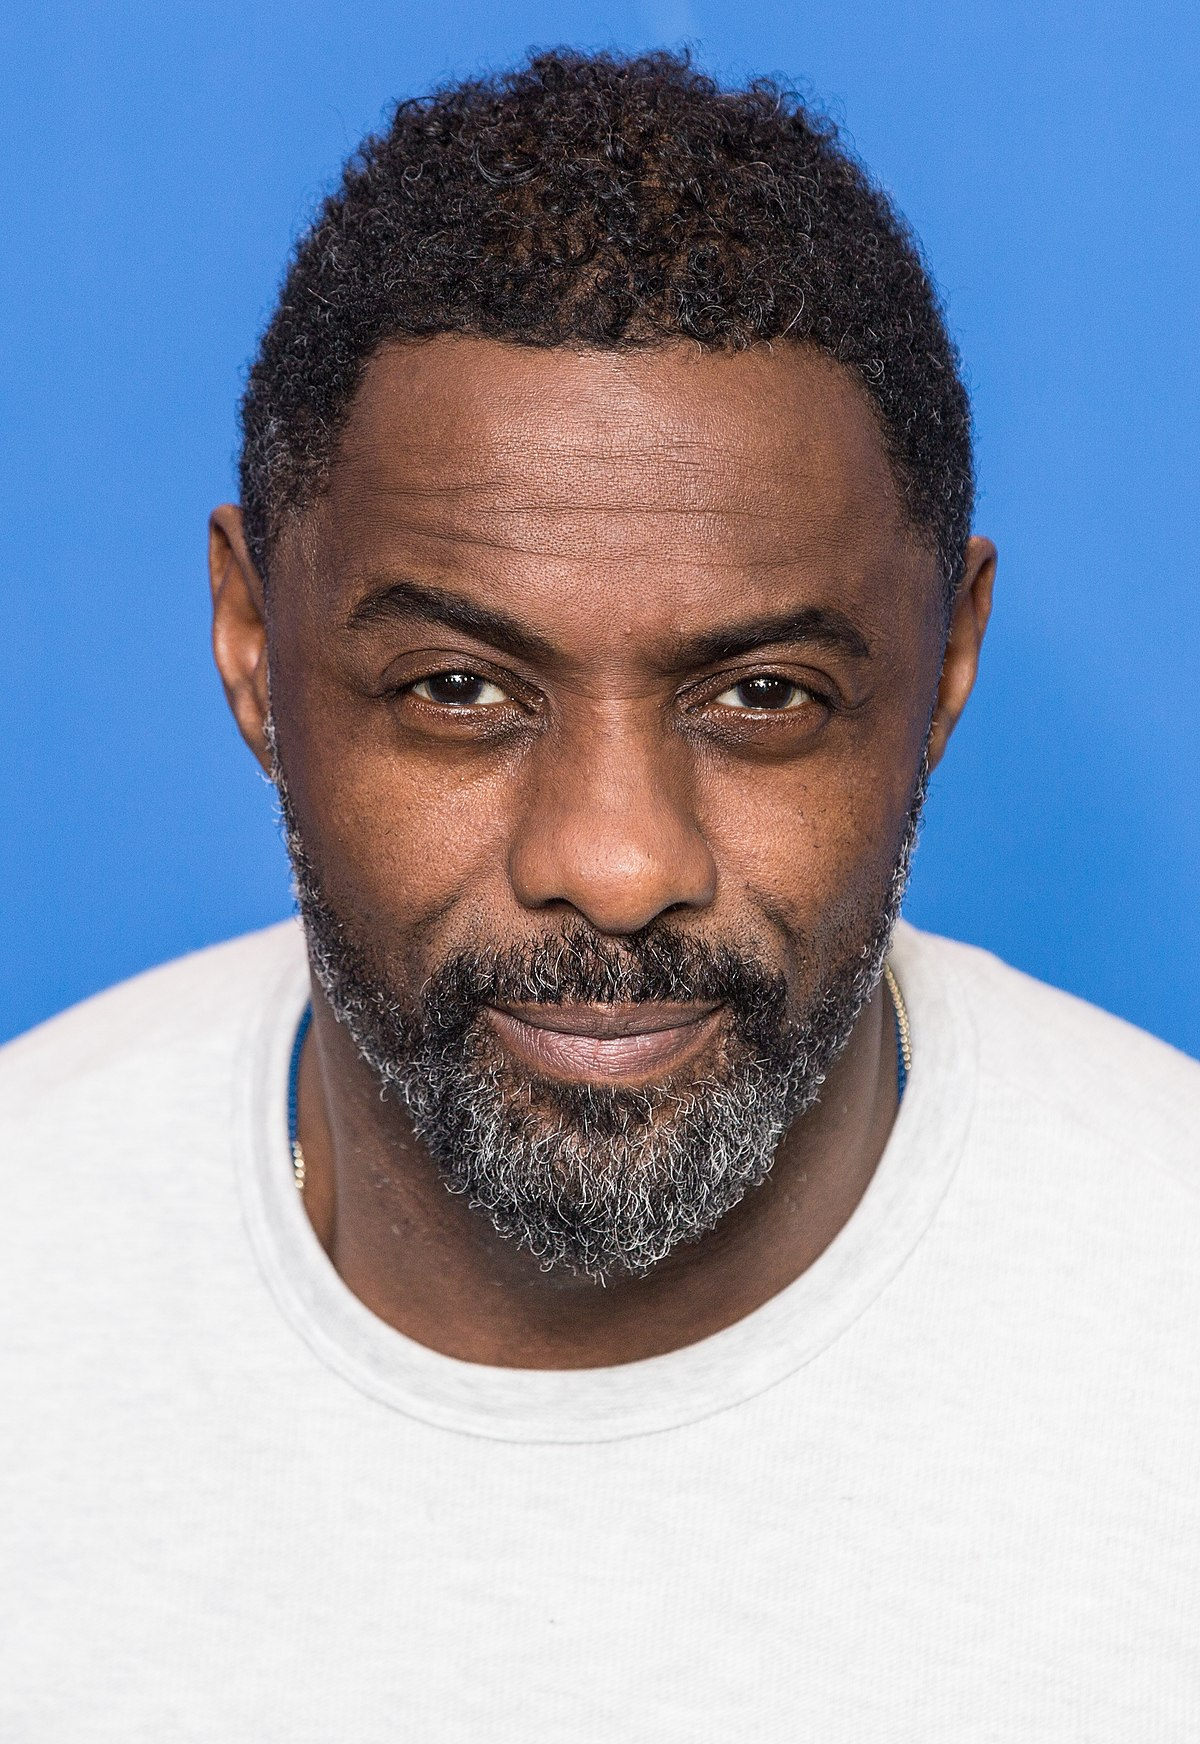 Idris Elba (born 1972)